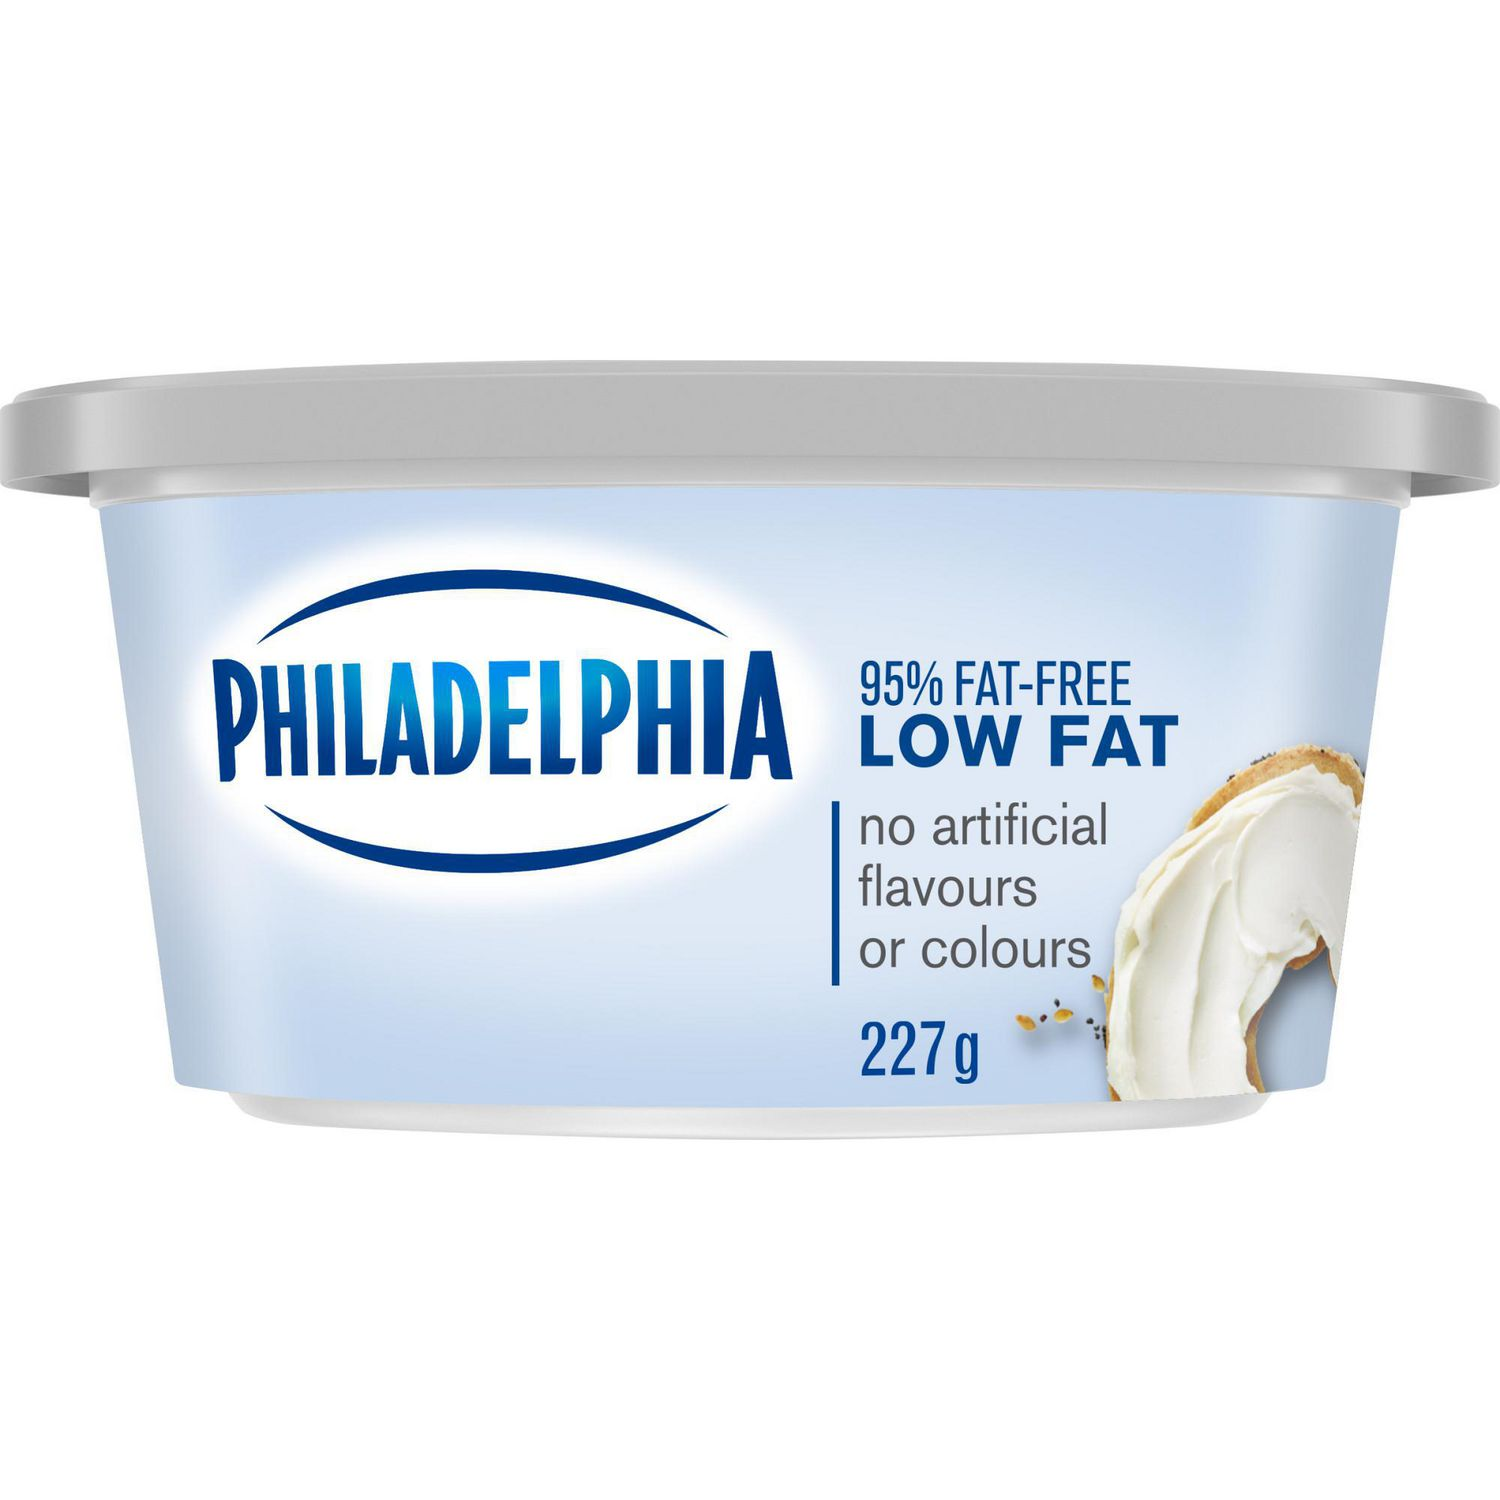 Low Fat Cheese - Dietary Product 54